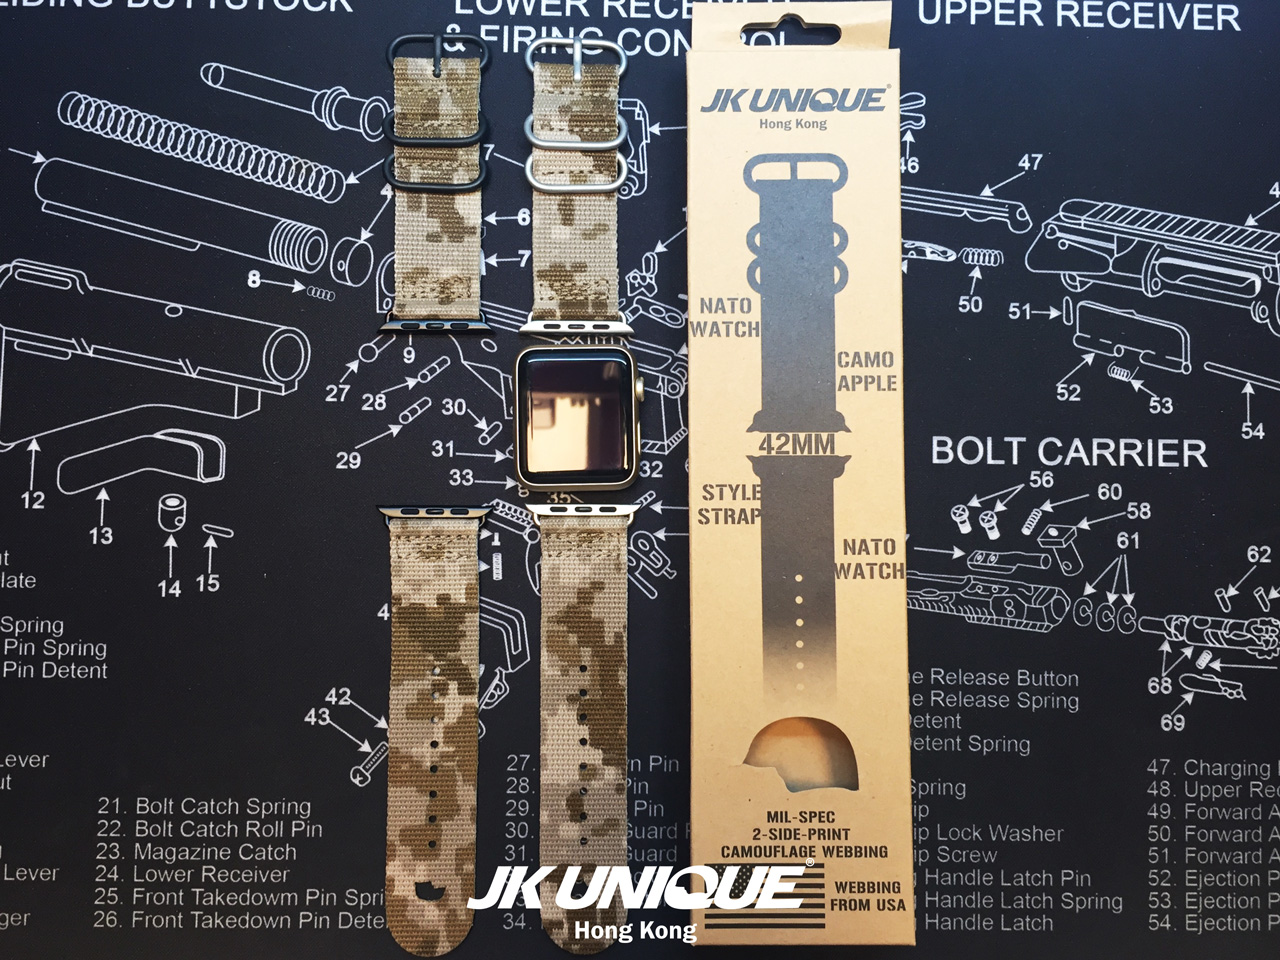 JK-UNIQUE-CAMO-NATO-Style-Apple-Watch-Strap-42mm-21-(1280).jpg